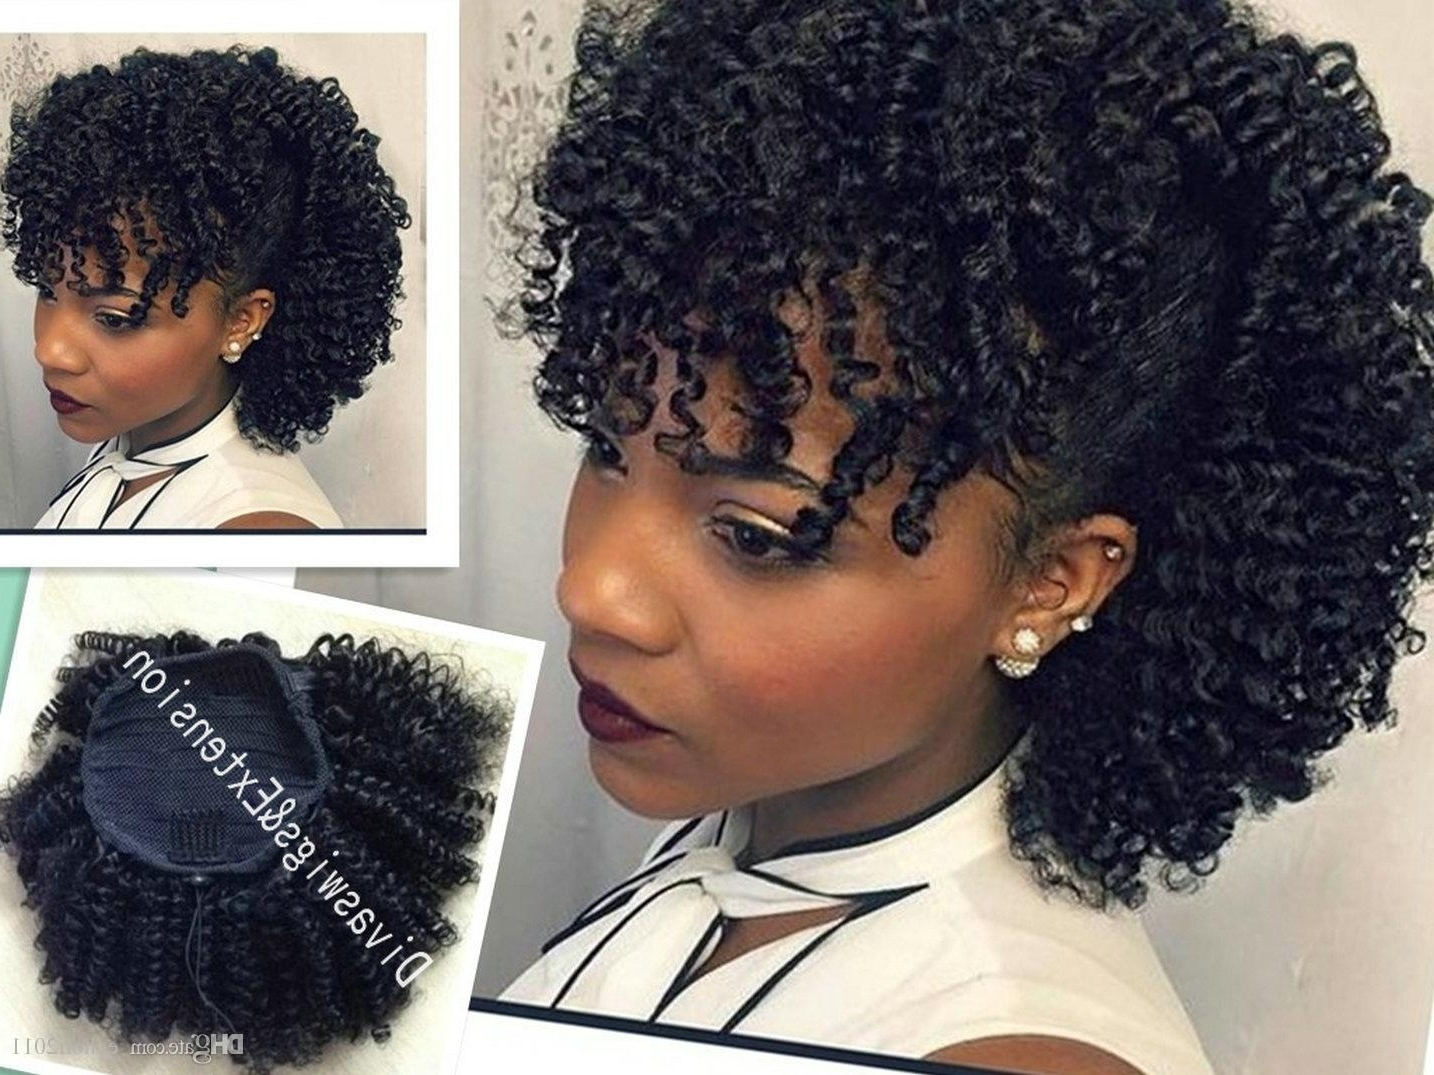 Widely Used Afro Style Ponytail Hairstyles Inside Curly Weavon Hair Style Afro Kinky Curly Weave Ponytail Hairstyles (View 20 of 20)